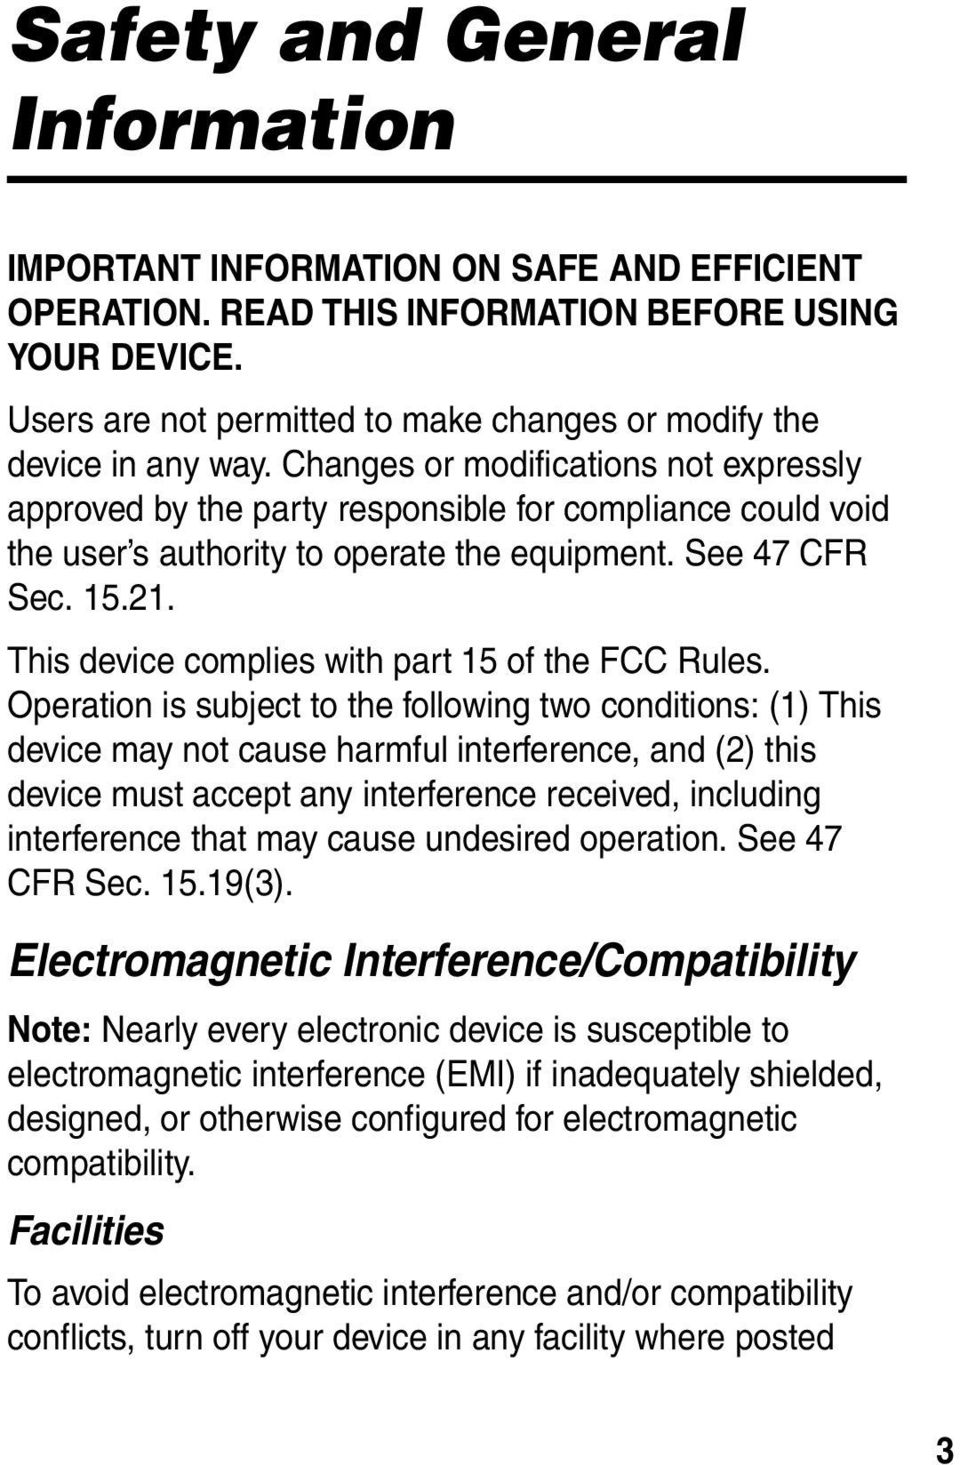 Changes or modifications not expressly approved by the party responsible for compliance could void the user s authority to operate the equipment. See 47 CFR Sec. 15.21.